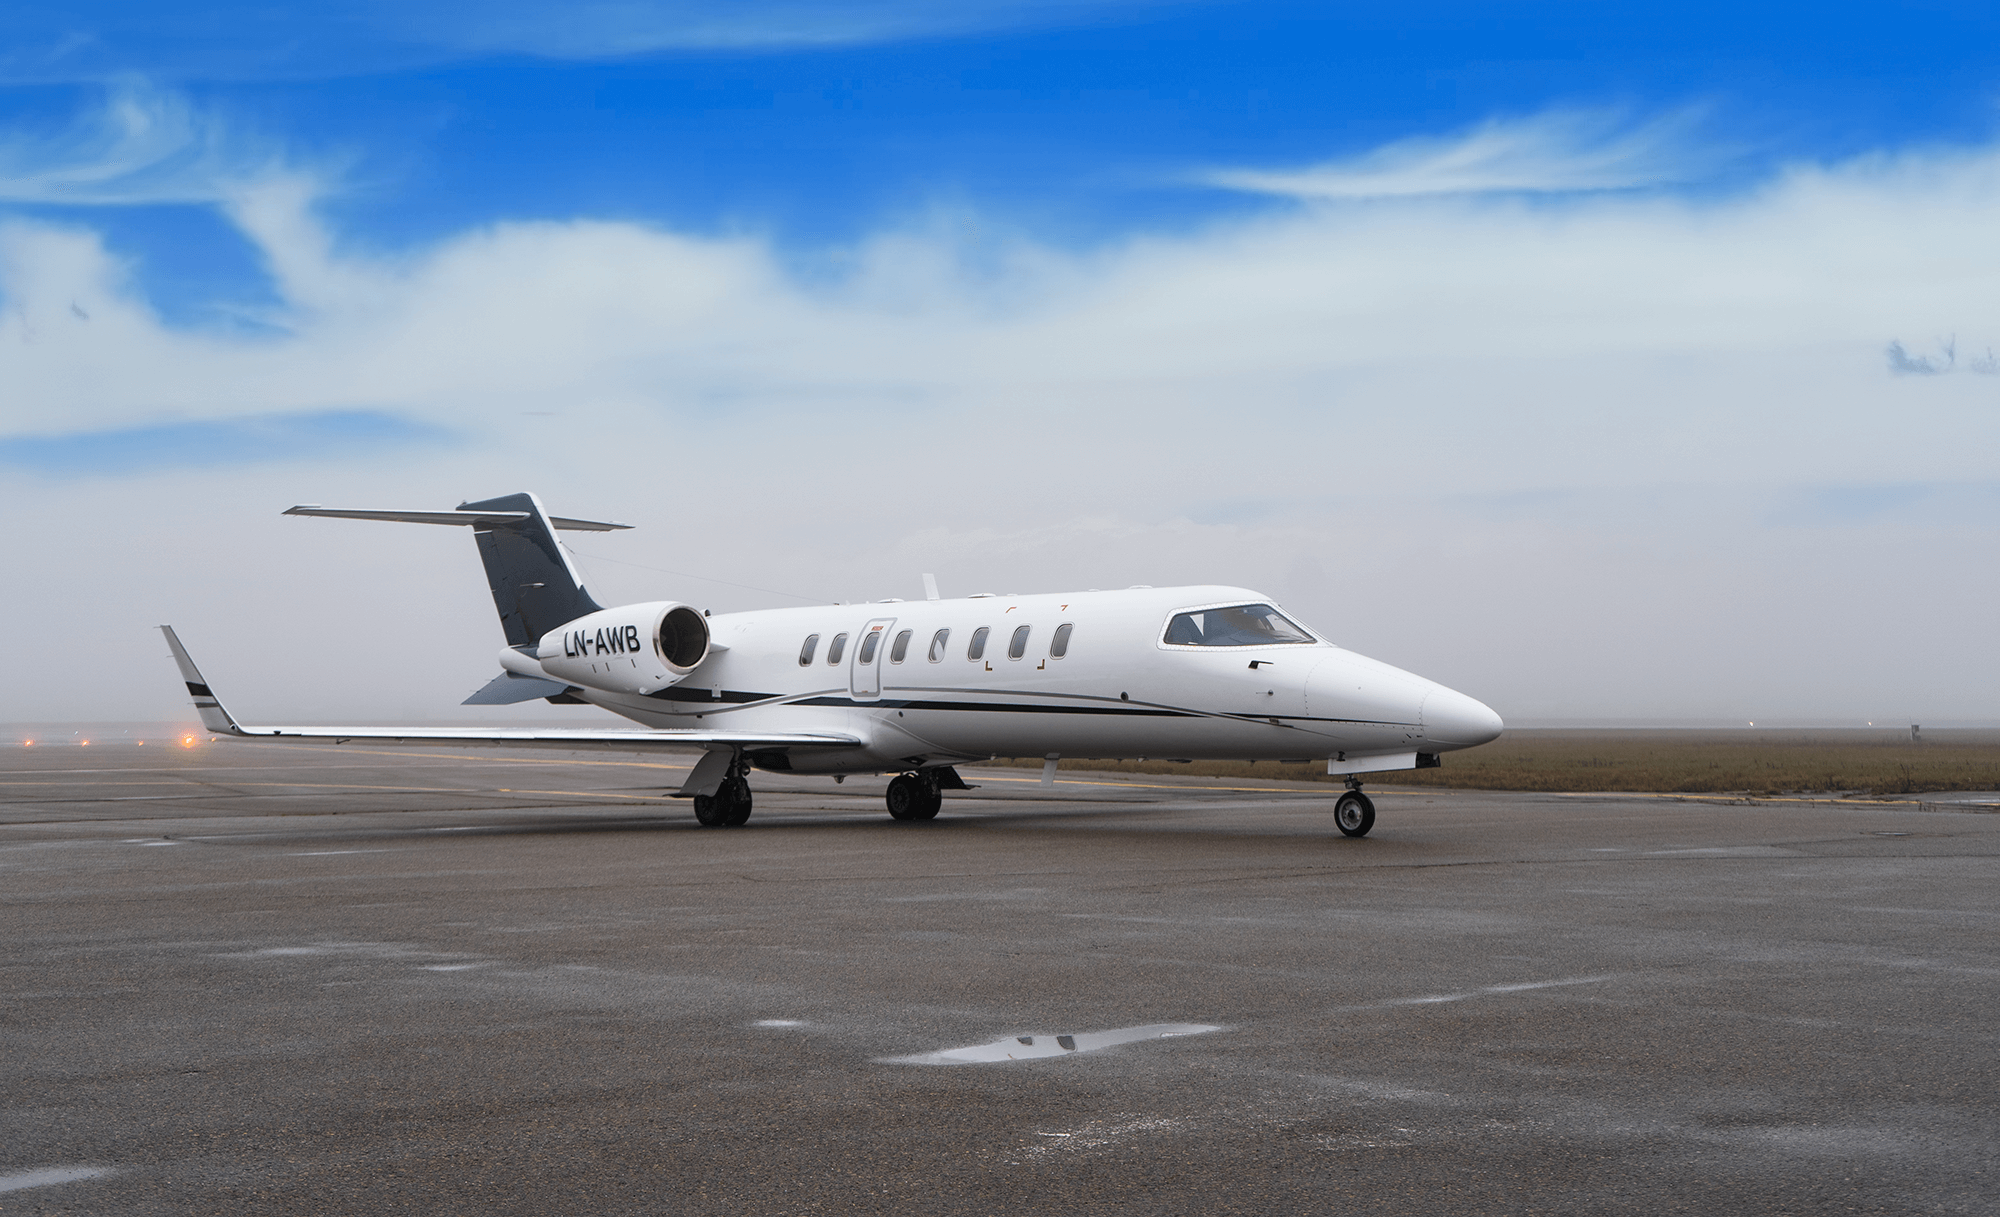 Learjet Airwing privatfly